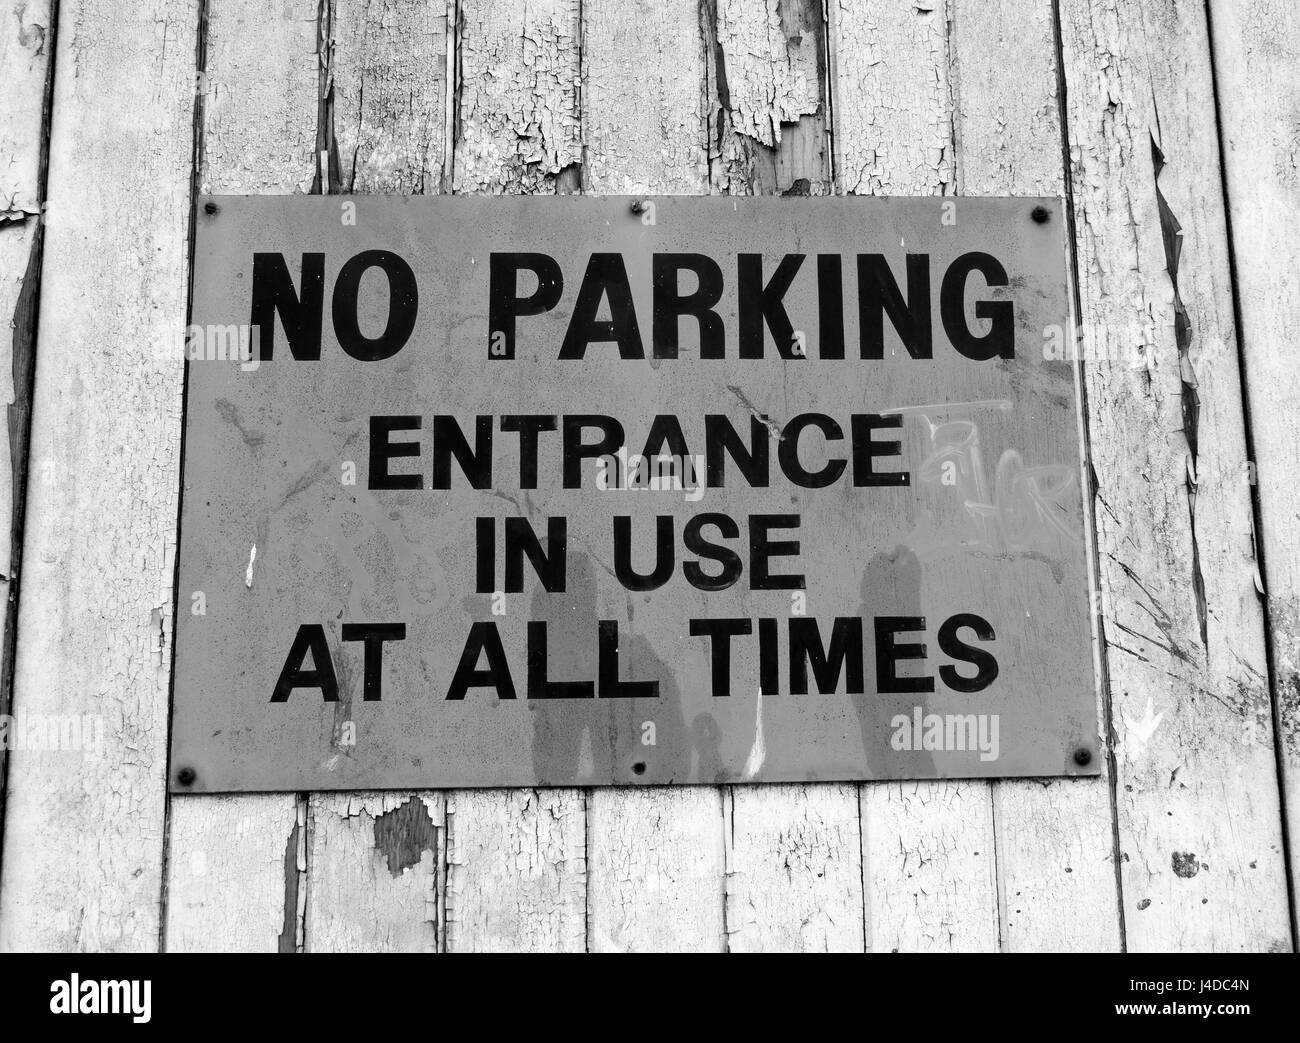 Monochrome faded no parking entrance in use at all times sign on dilapidated timber plank wall with flaking paintwork - Stock Image